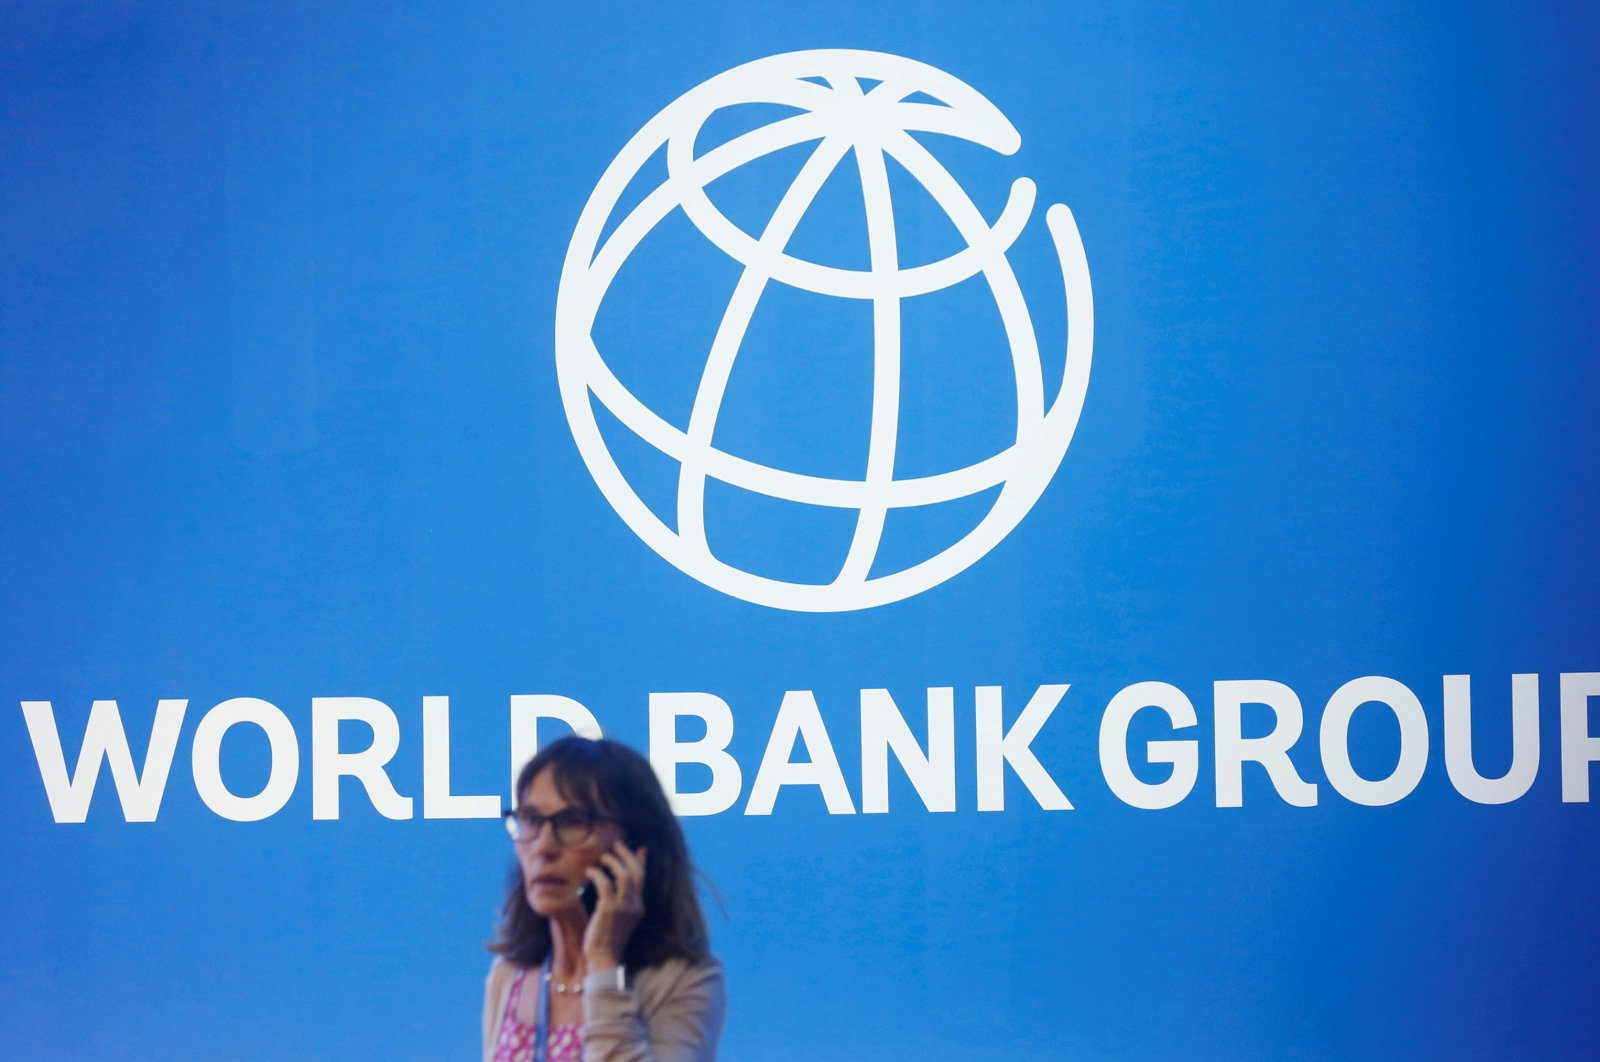 A participant stands near a logo of the World Bank at the International Monetary Fund - World Bank Annual Meeting 2018 in Nusa Dua, Bali, Indonesia, Oct. 12, 2018. (Reuters File Photo)